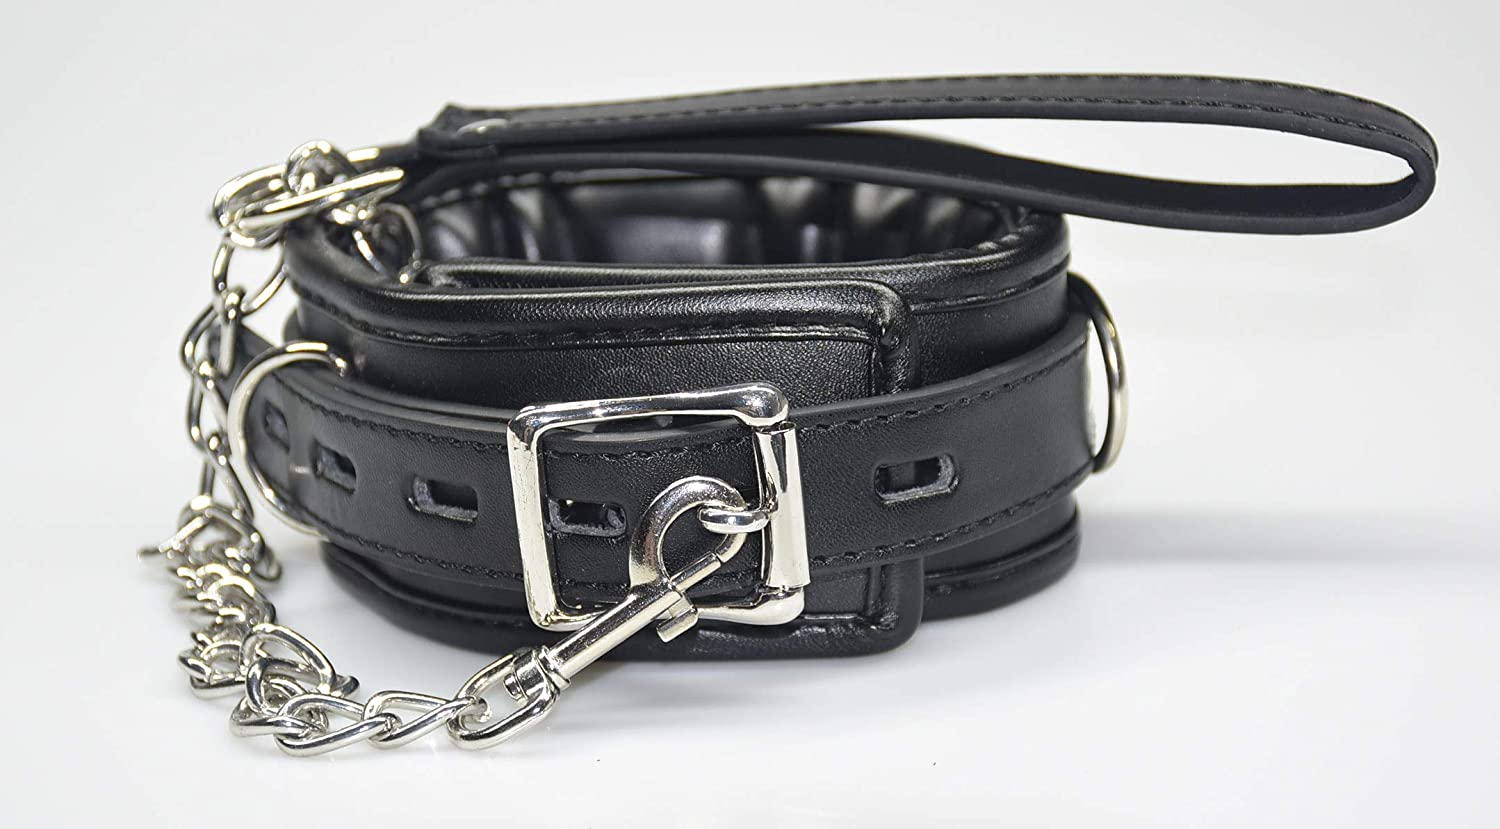 Hxiu Leather Collar with Heavy Metal Choker,6 Progressive and Adjustable Levels With Handle Black